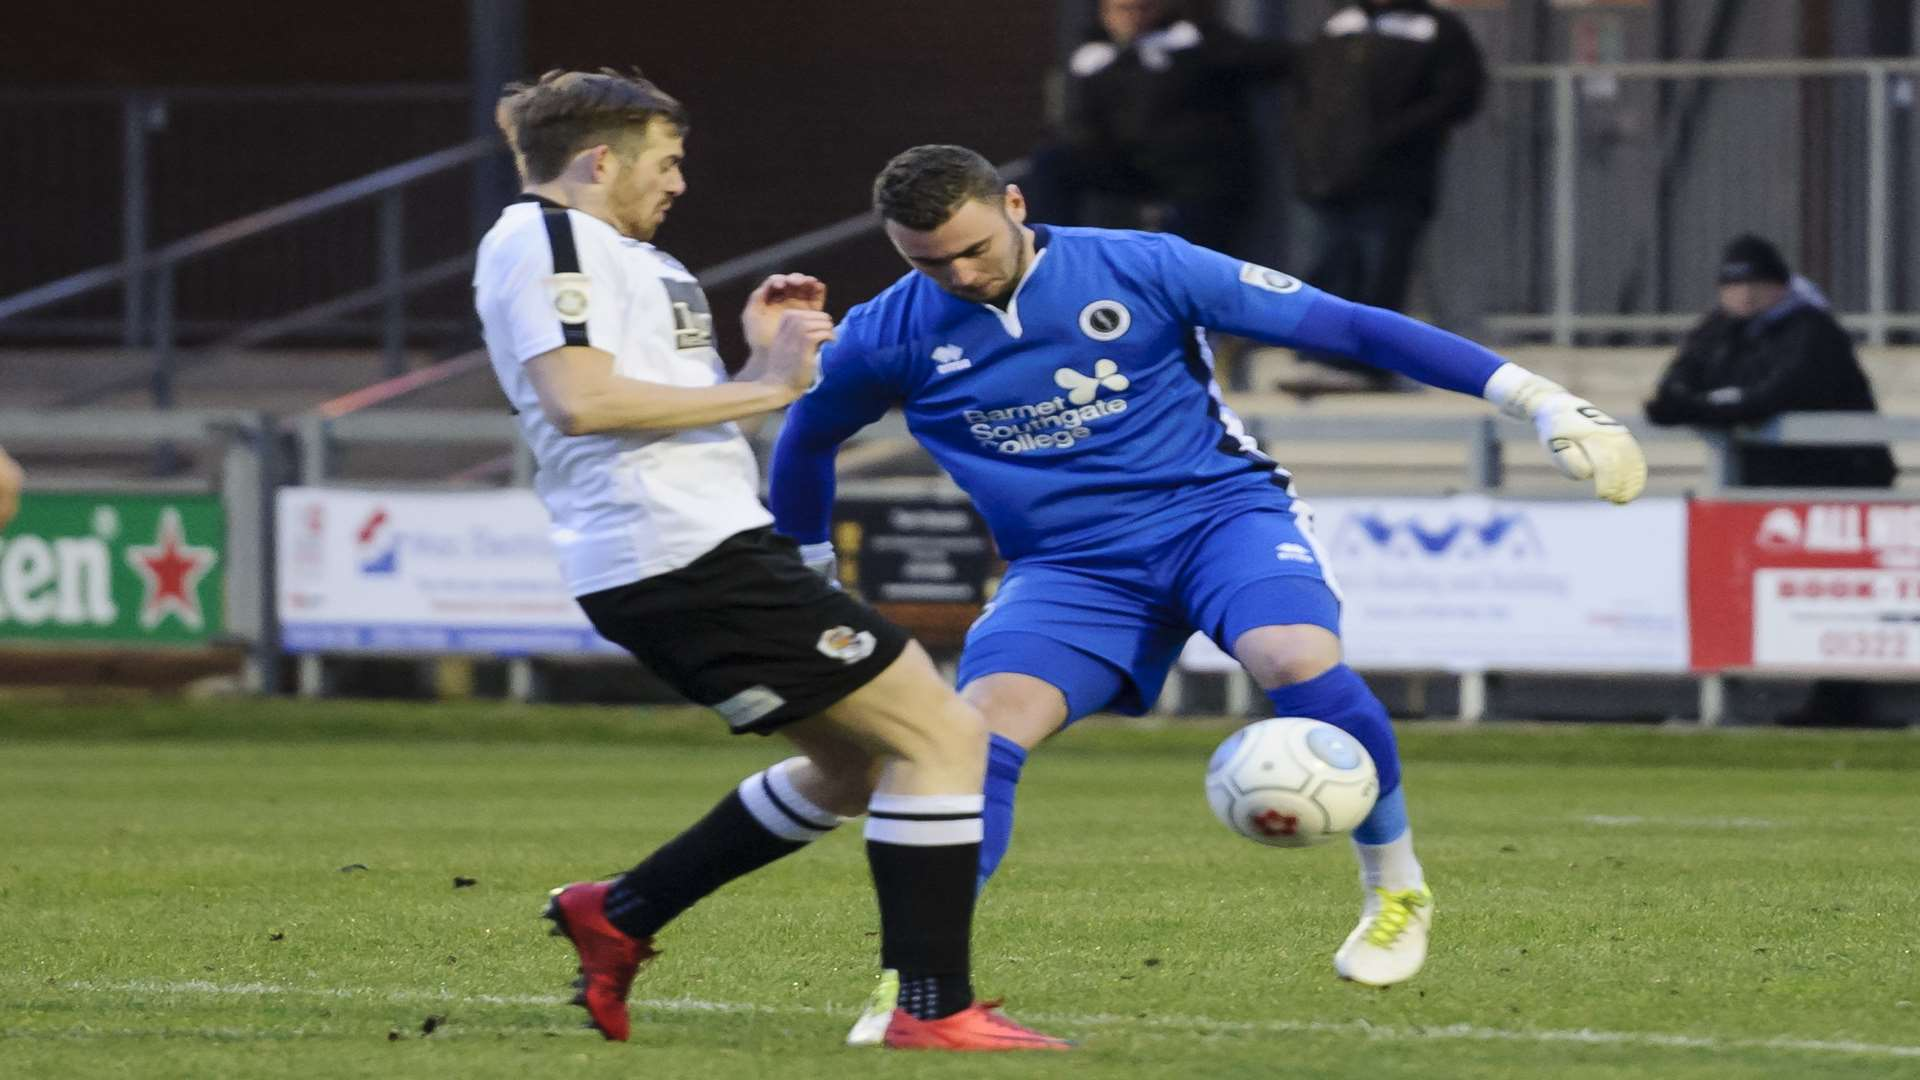 Dartford's Tom Murphy puts Boreham Wood keeper Grant Smith under pressure in Saturday's 1-1 draw Picture: Andy Payton